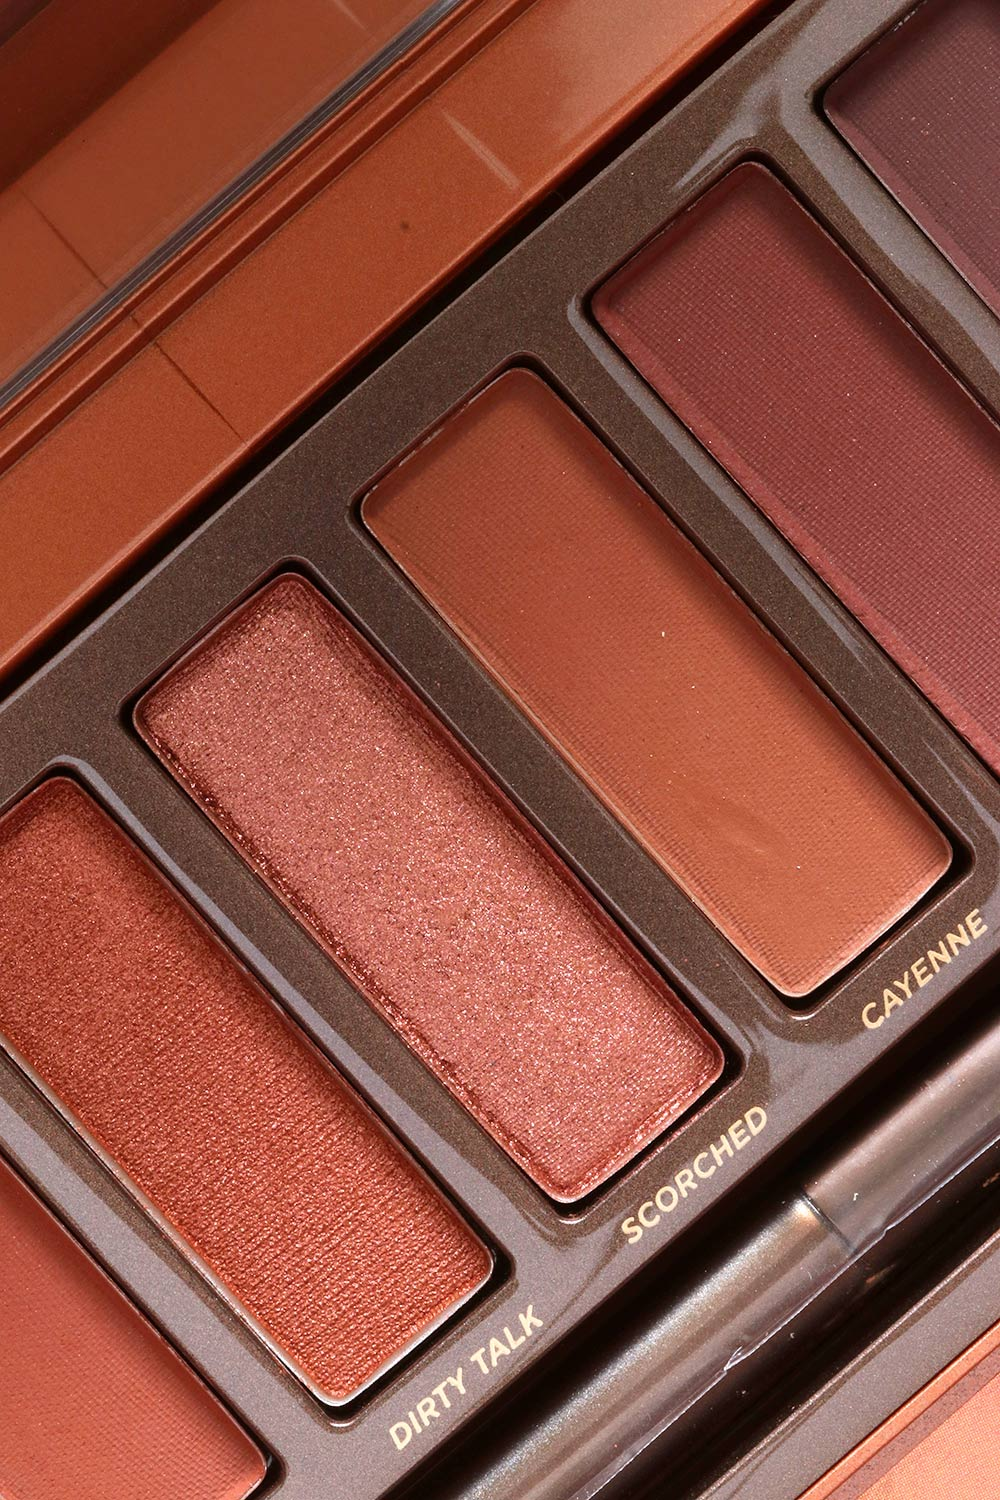 The Urban Decay Naked Heat Palette, 24/7 Glide-On Eye